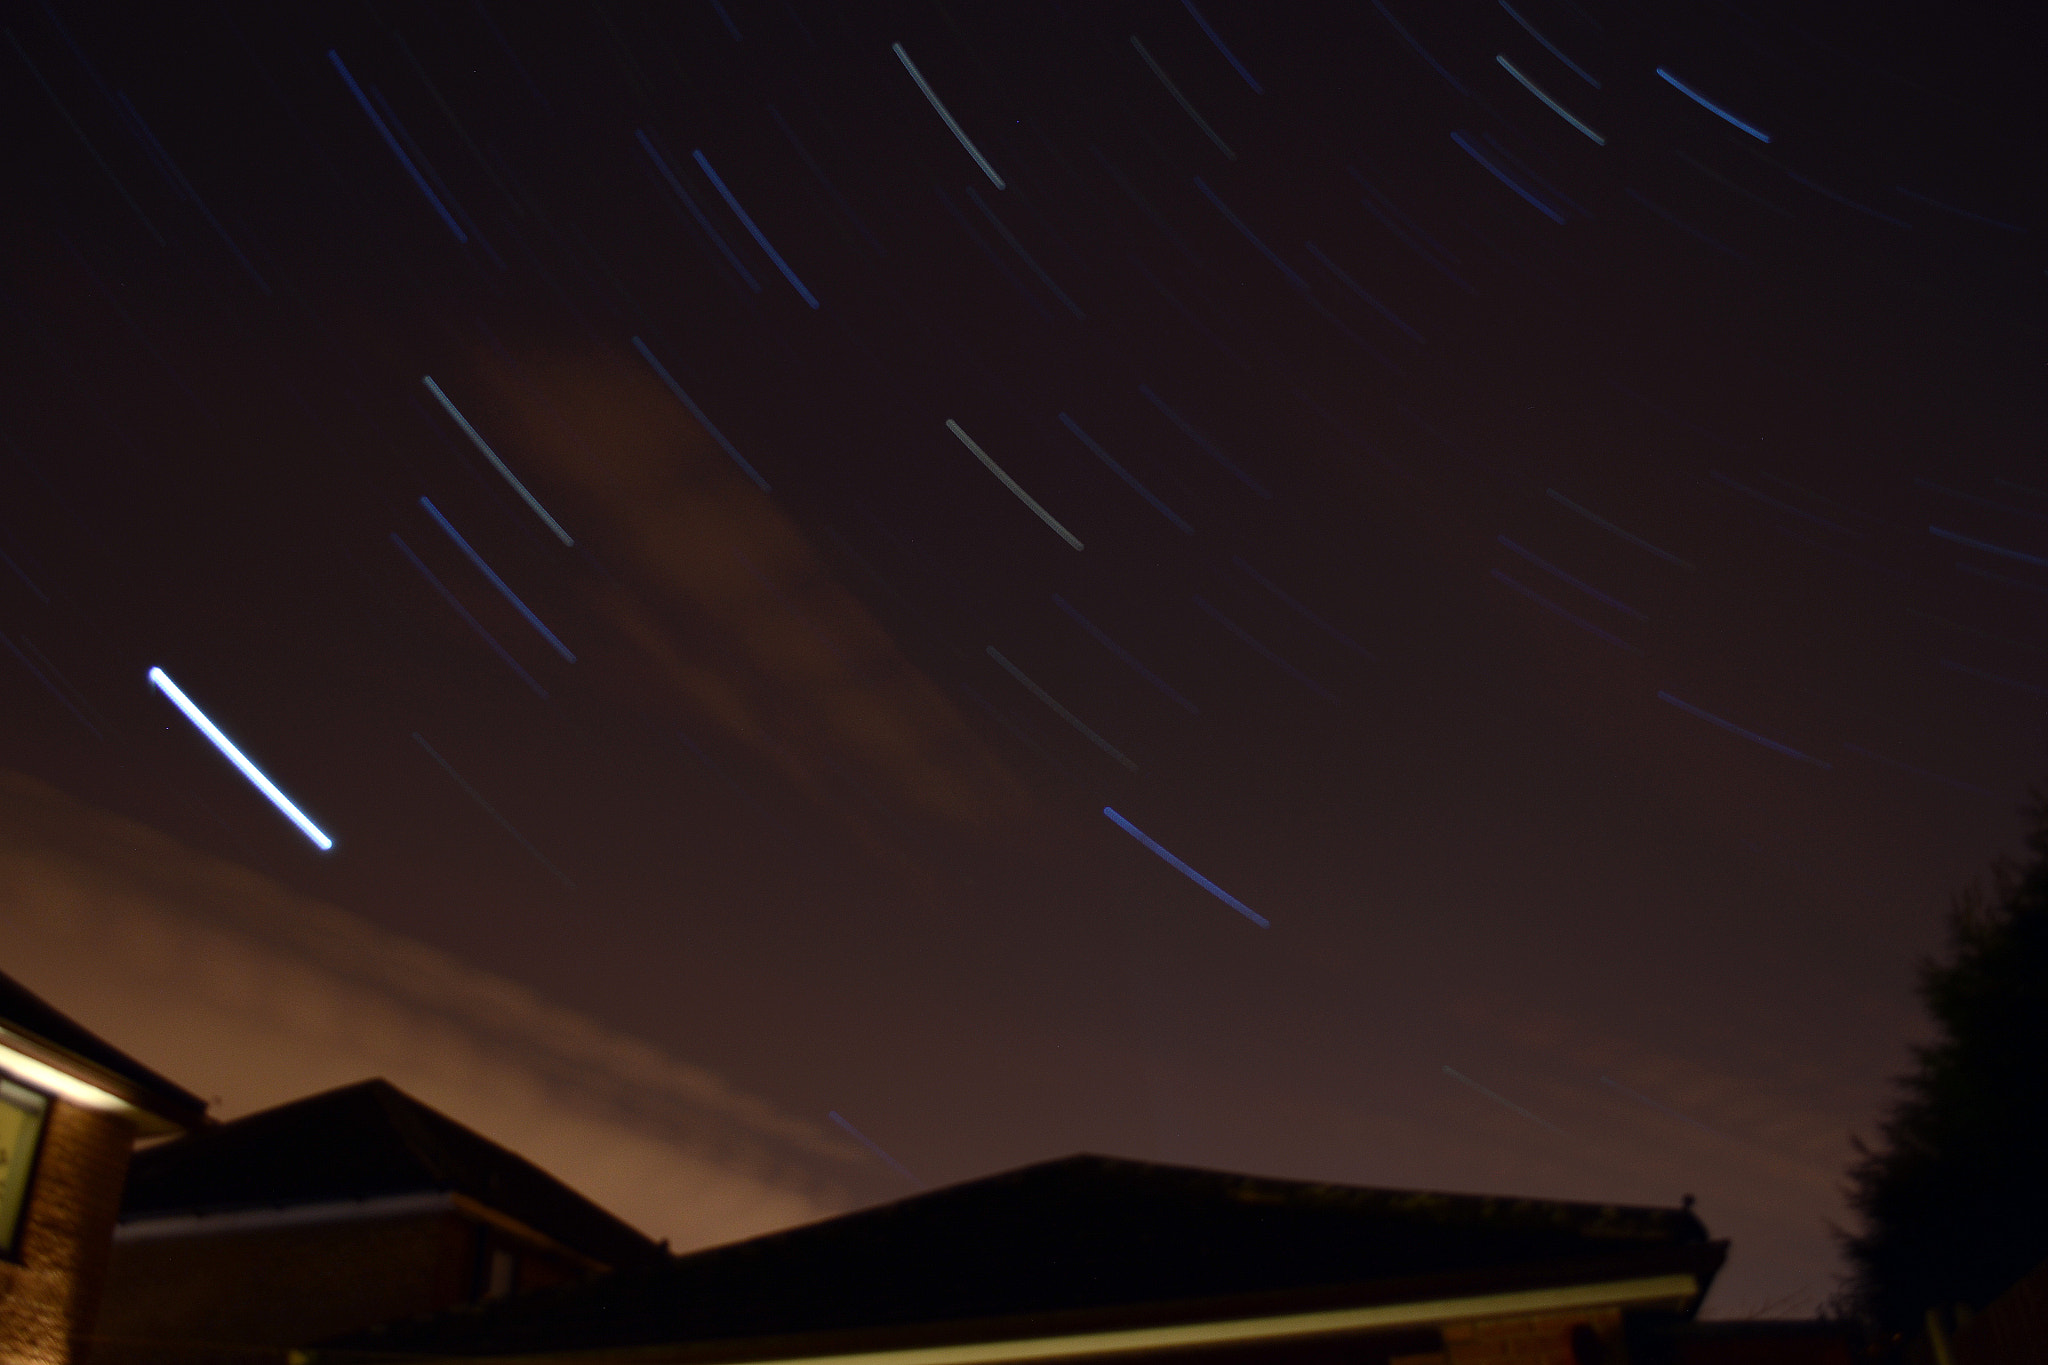 Photograph Star trail by Richard Whittle on 500px